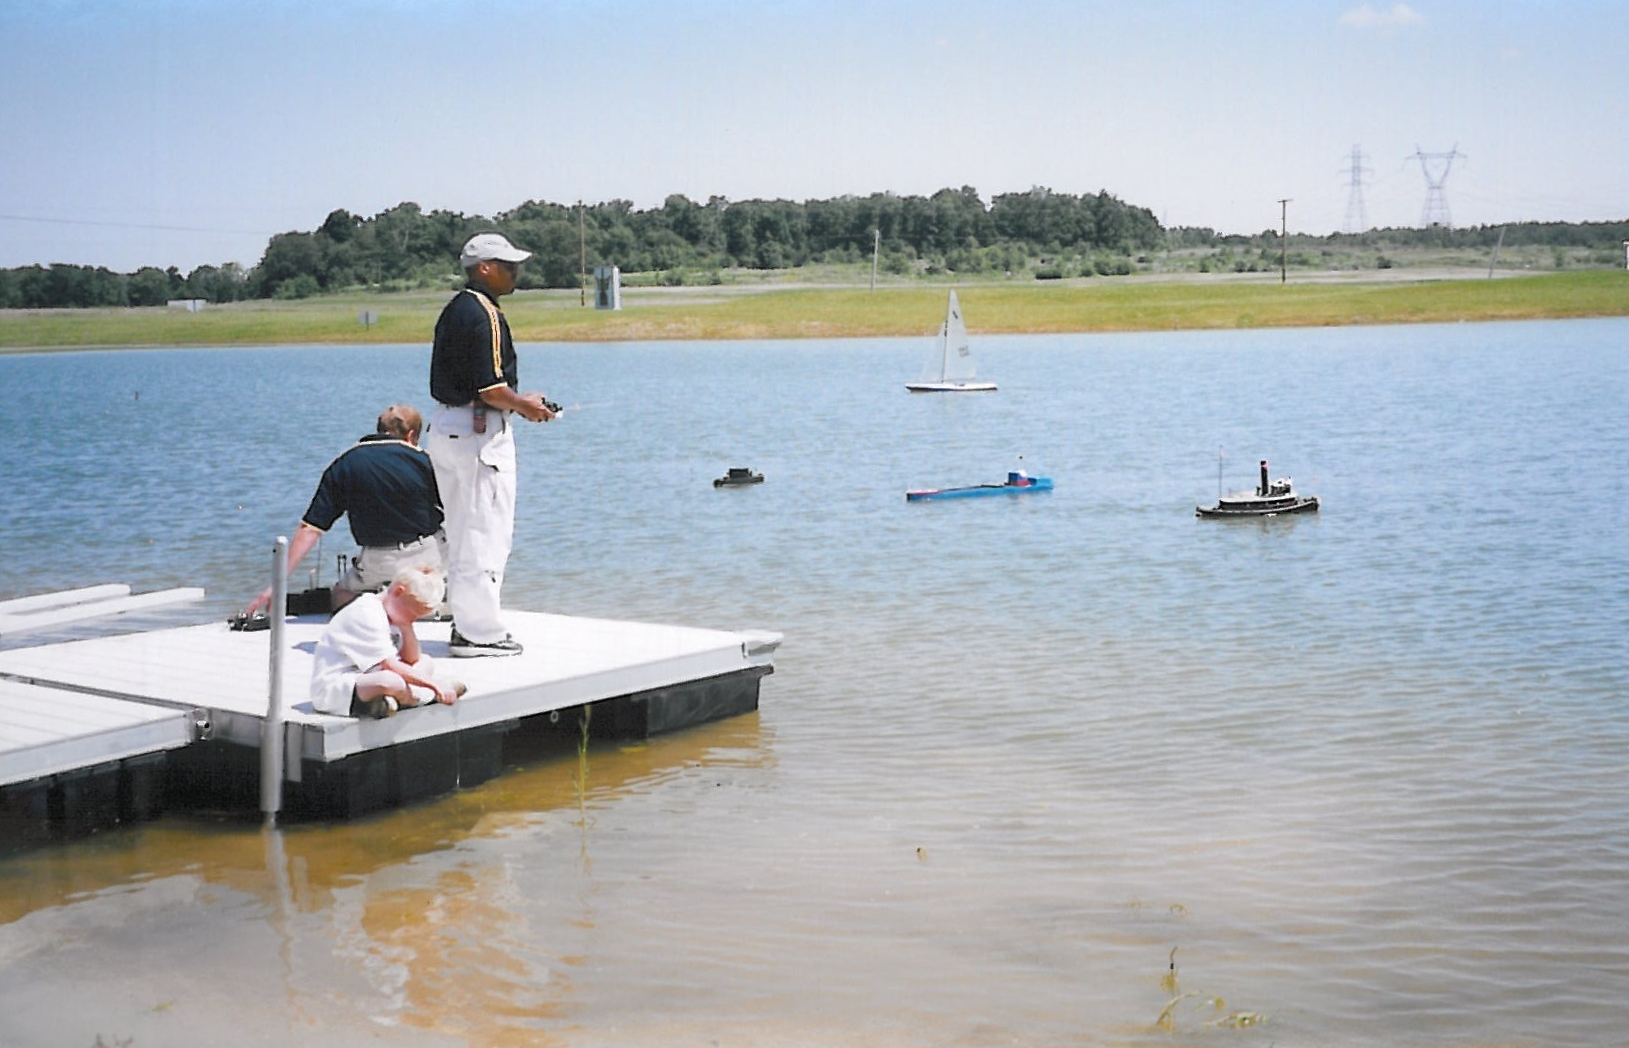 Radio Control boating, Grand Event, July 9, 2001. (Source: National Model Aviation Museum Archives, AMA Collection #0001, Photo Credit: AMA staff.)